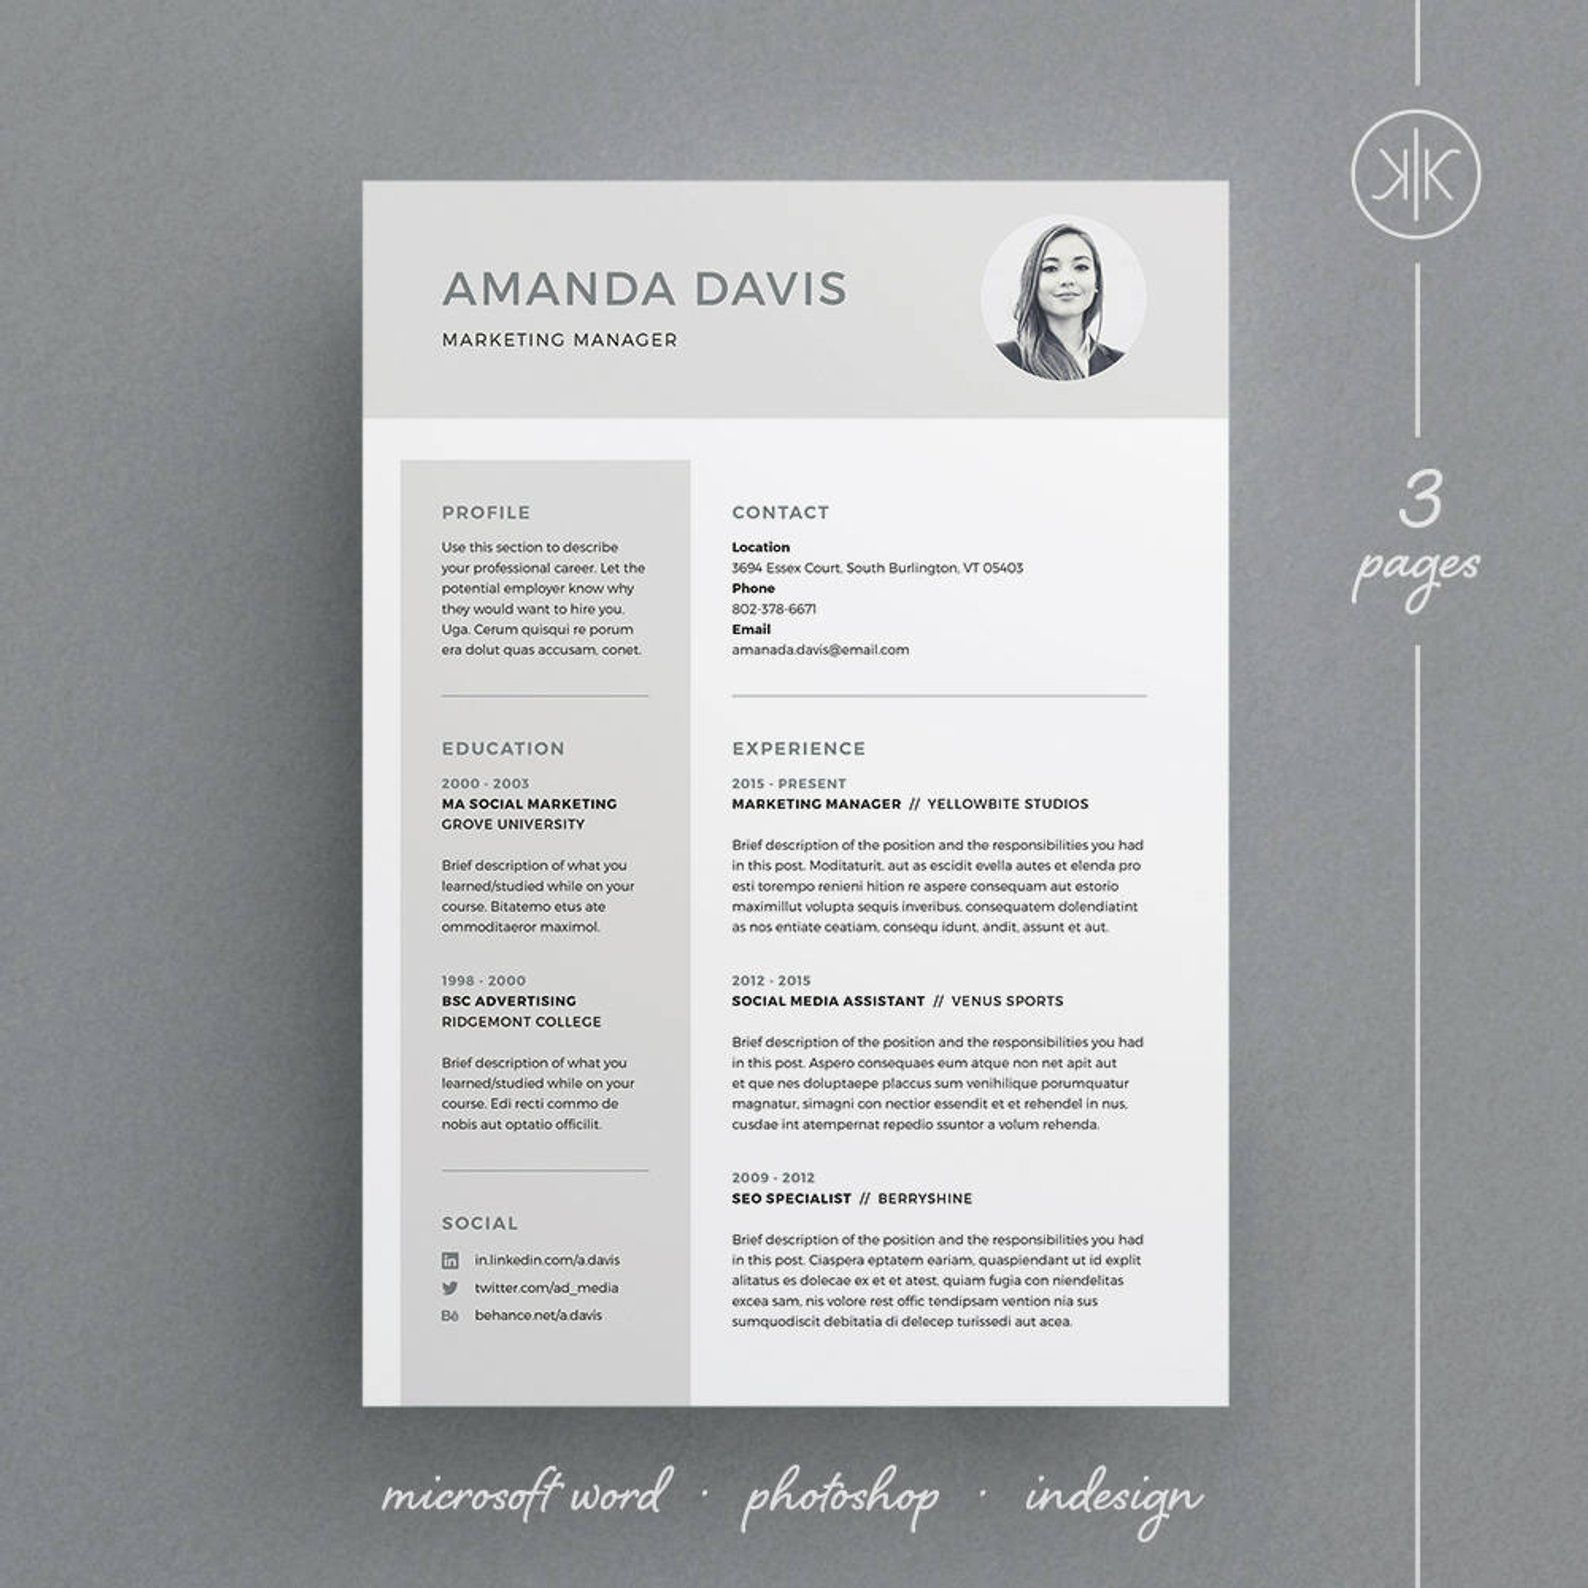 Amanda Resume/CV Template | Word | Photoshop | InDesign ...